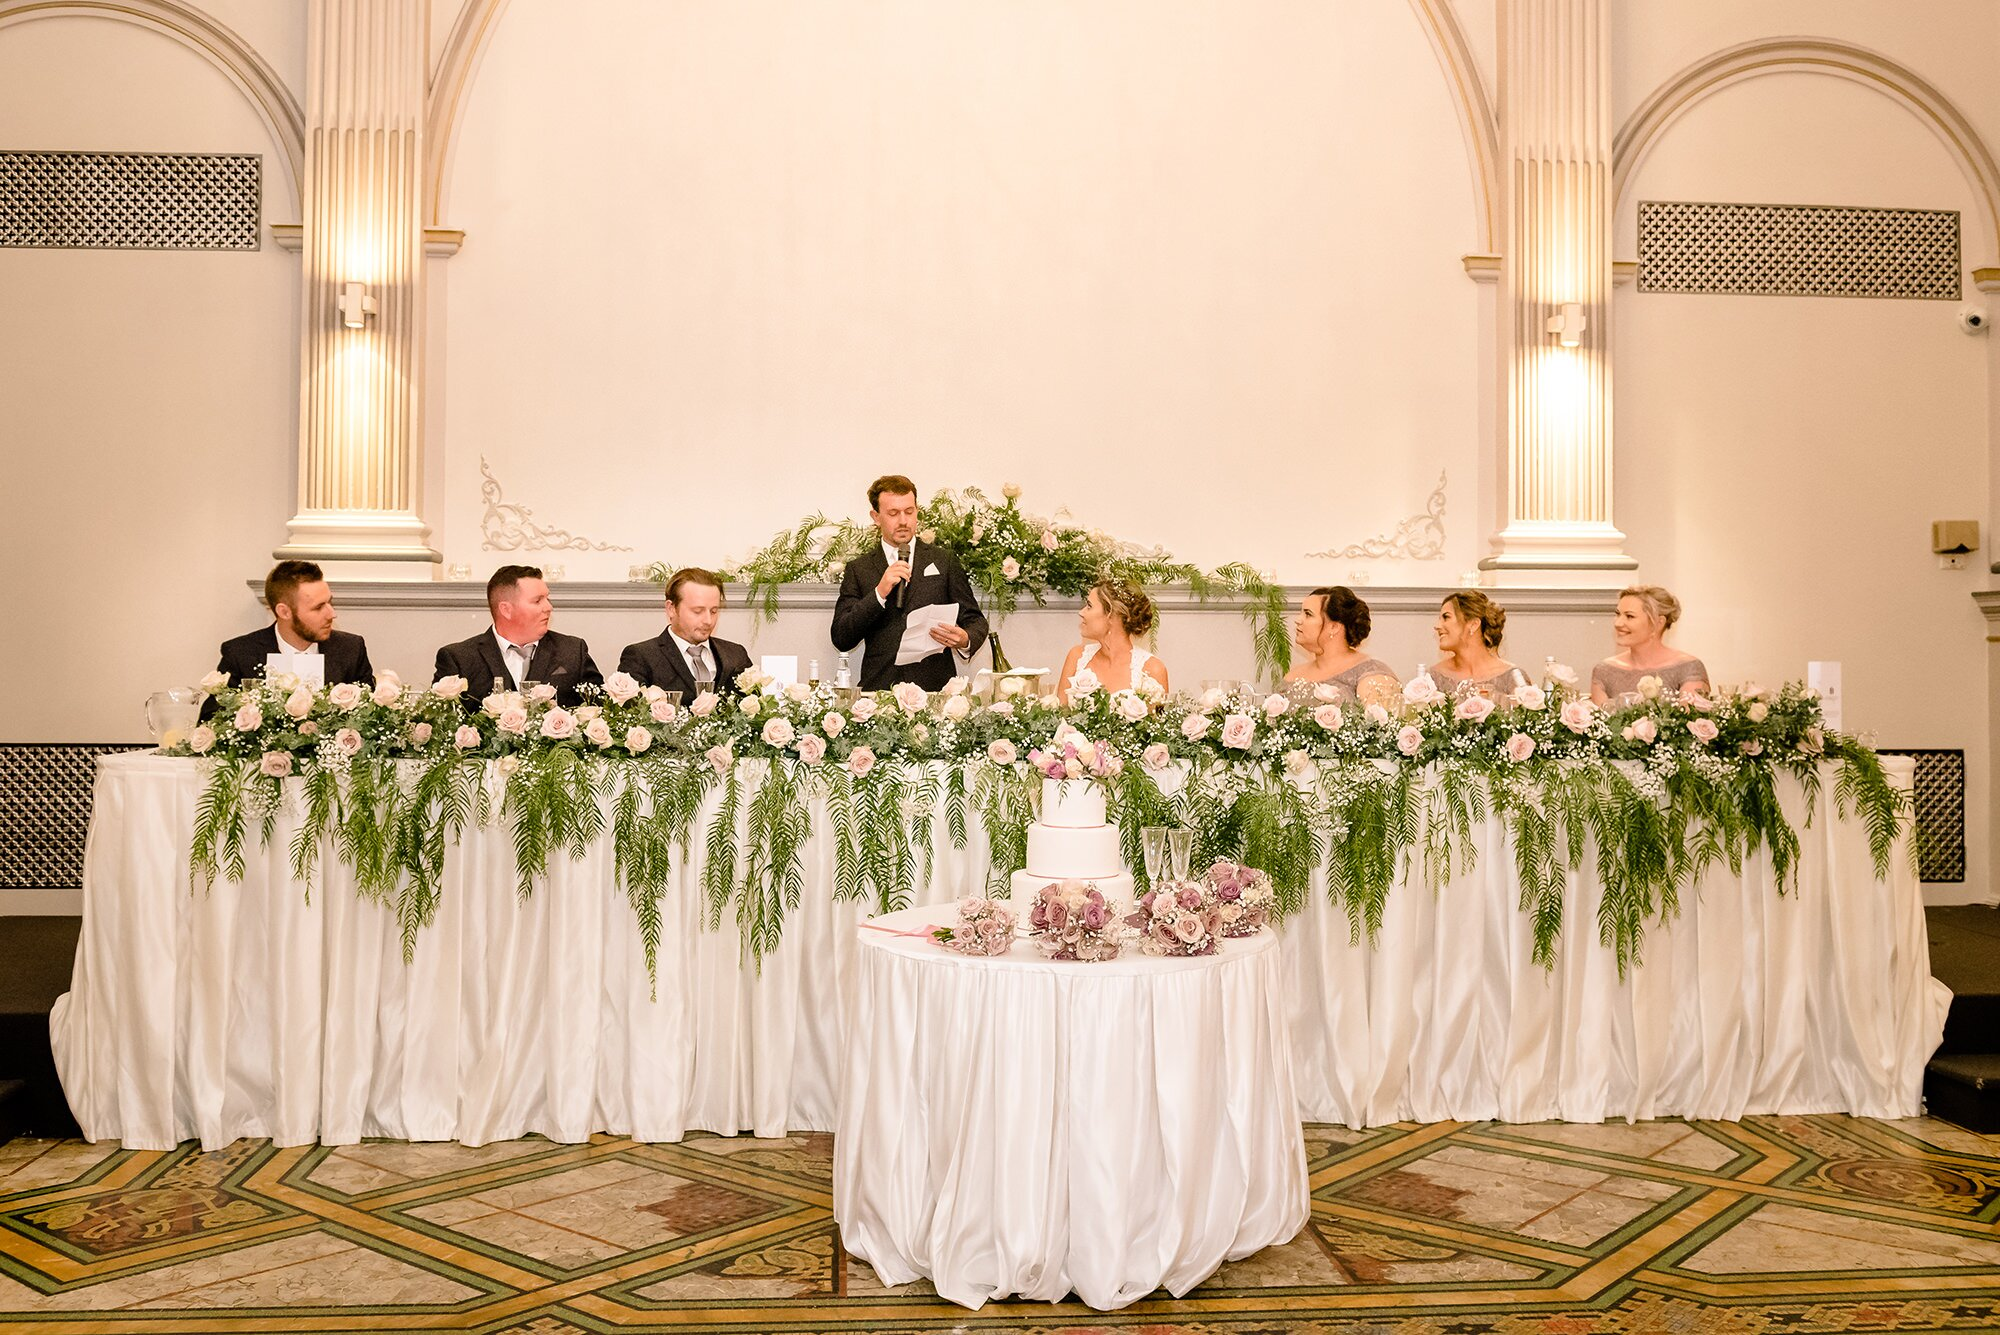 sydney-wedding-curzon-hall-ceremony-reception-styling-flower-packages_15